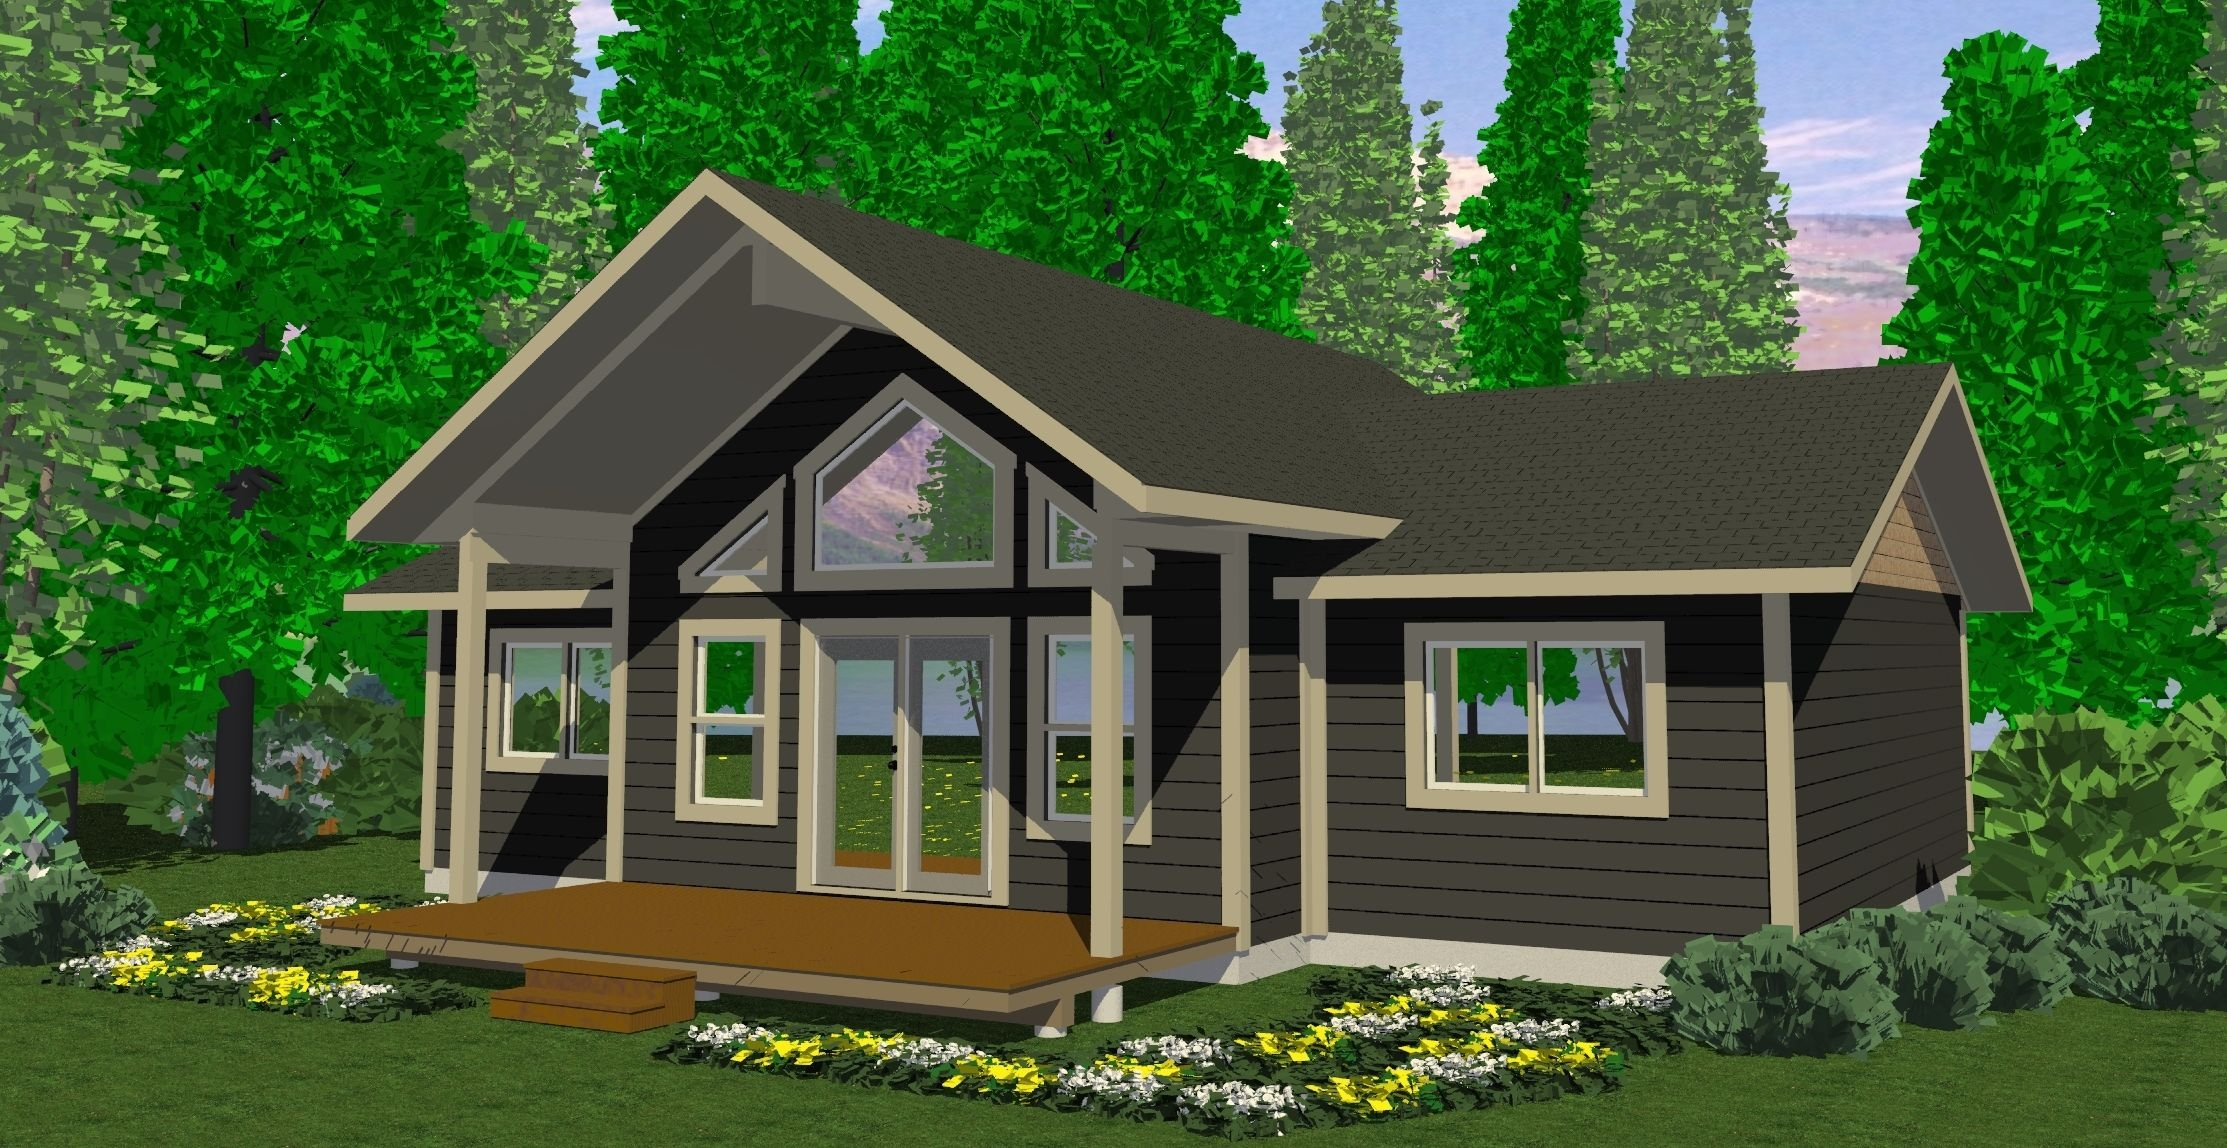 Small Modern Cabins Small Cabins and Cottages Plans, 3 ...